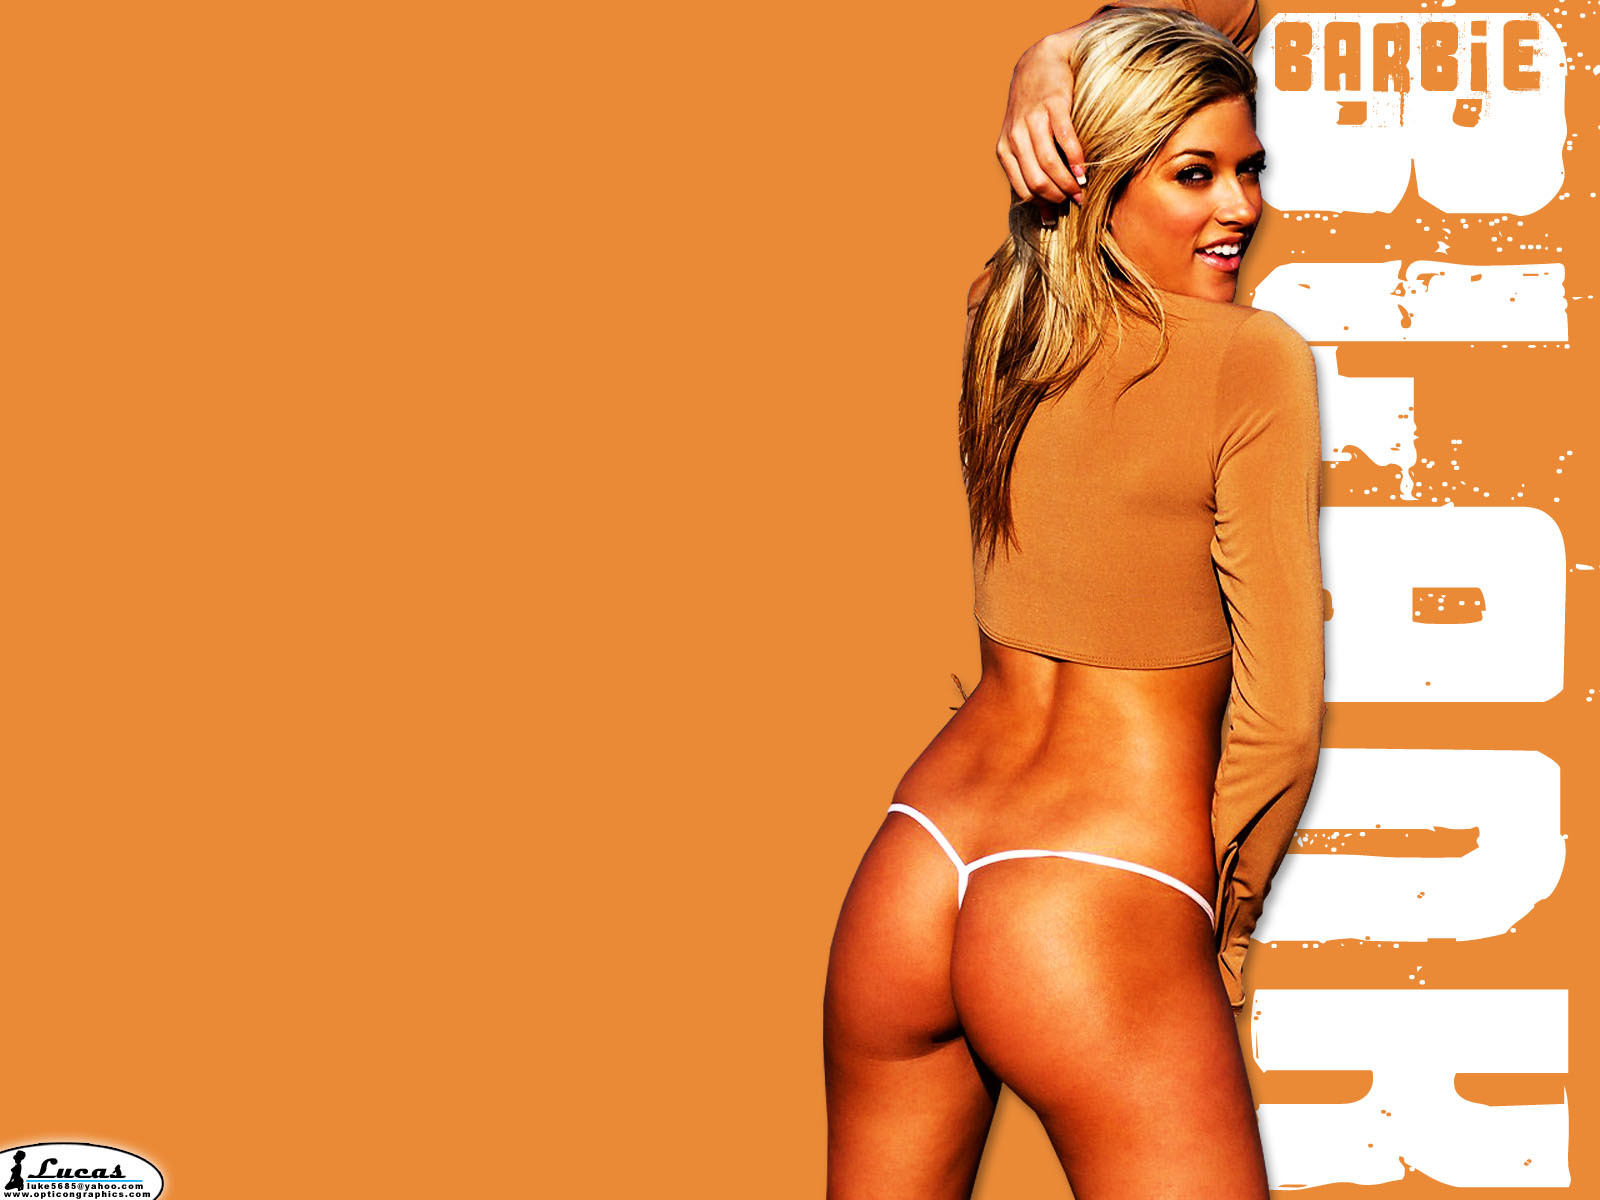 Kelly Kelly barbie Blank HD Wallpaper